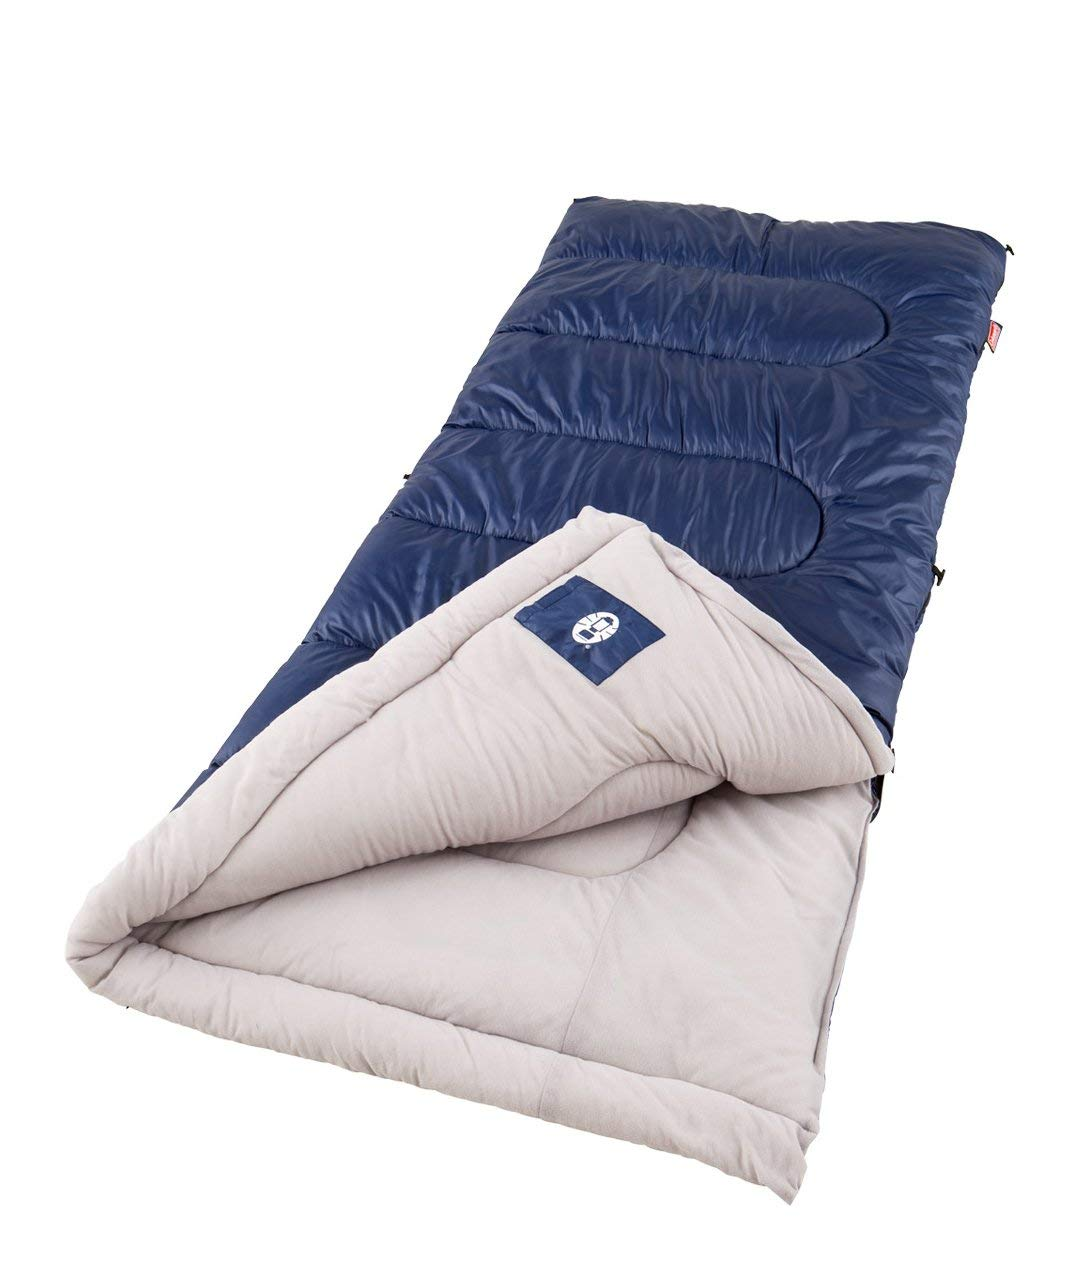 Coleman Brazos Best Sleeping Bags Review by www.snoremagazine.com